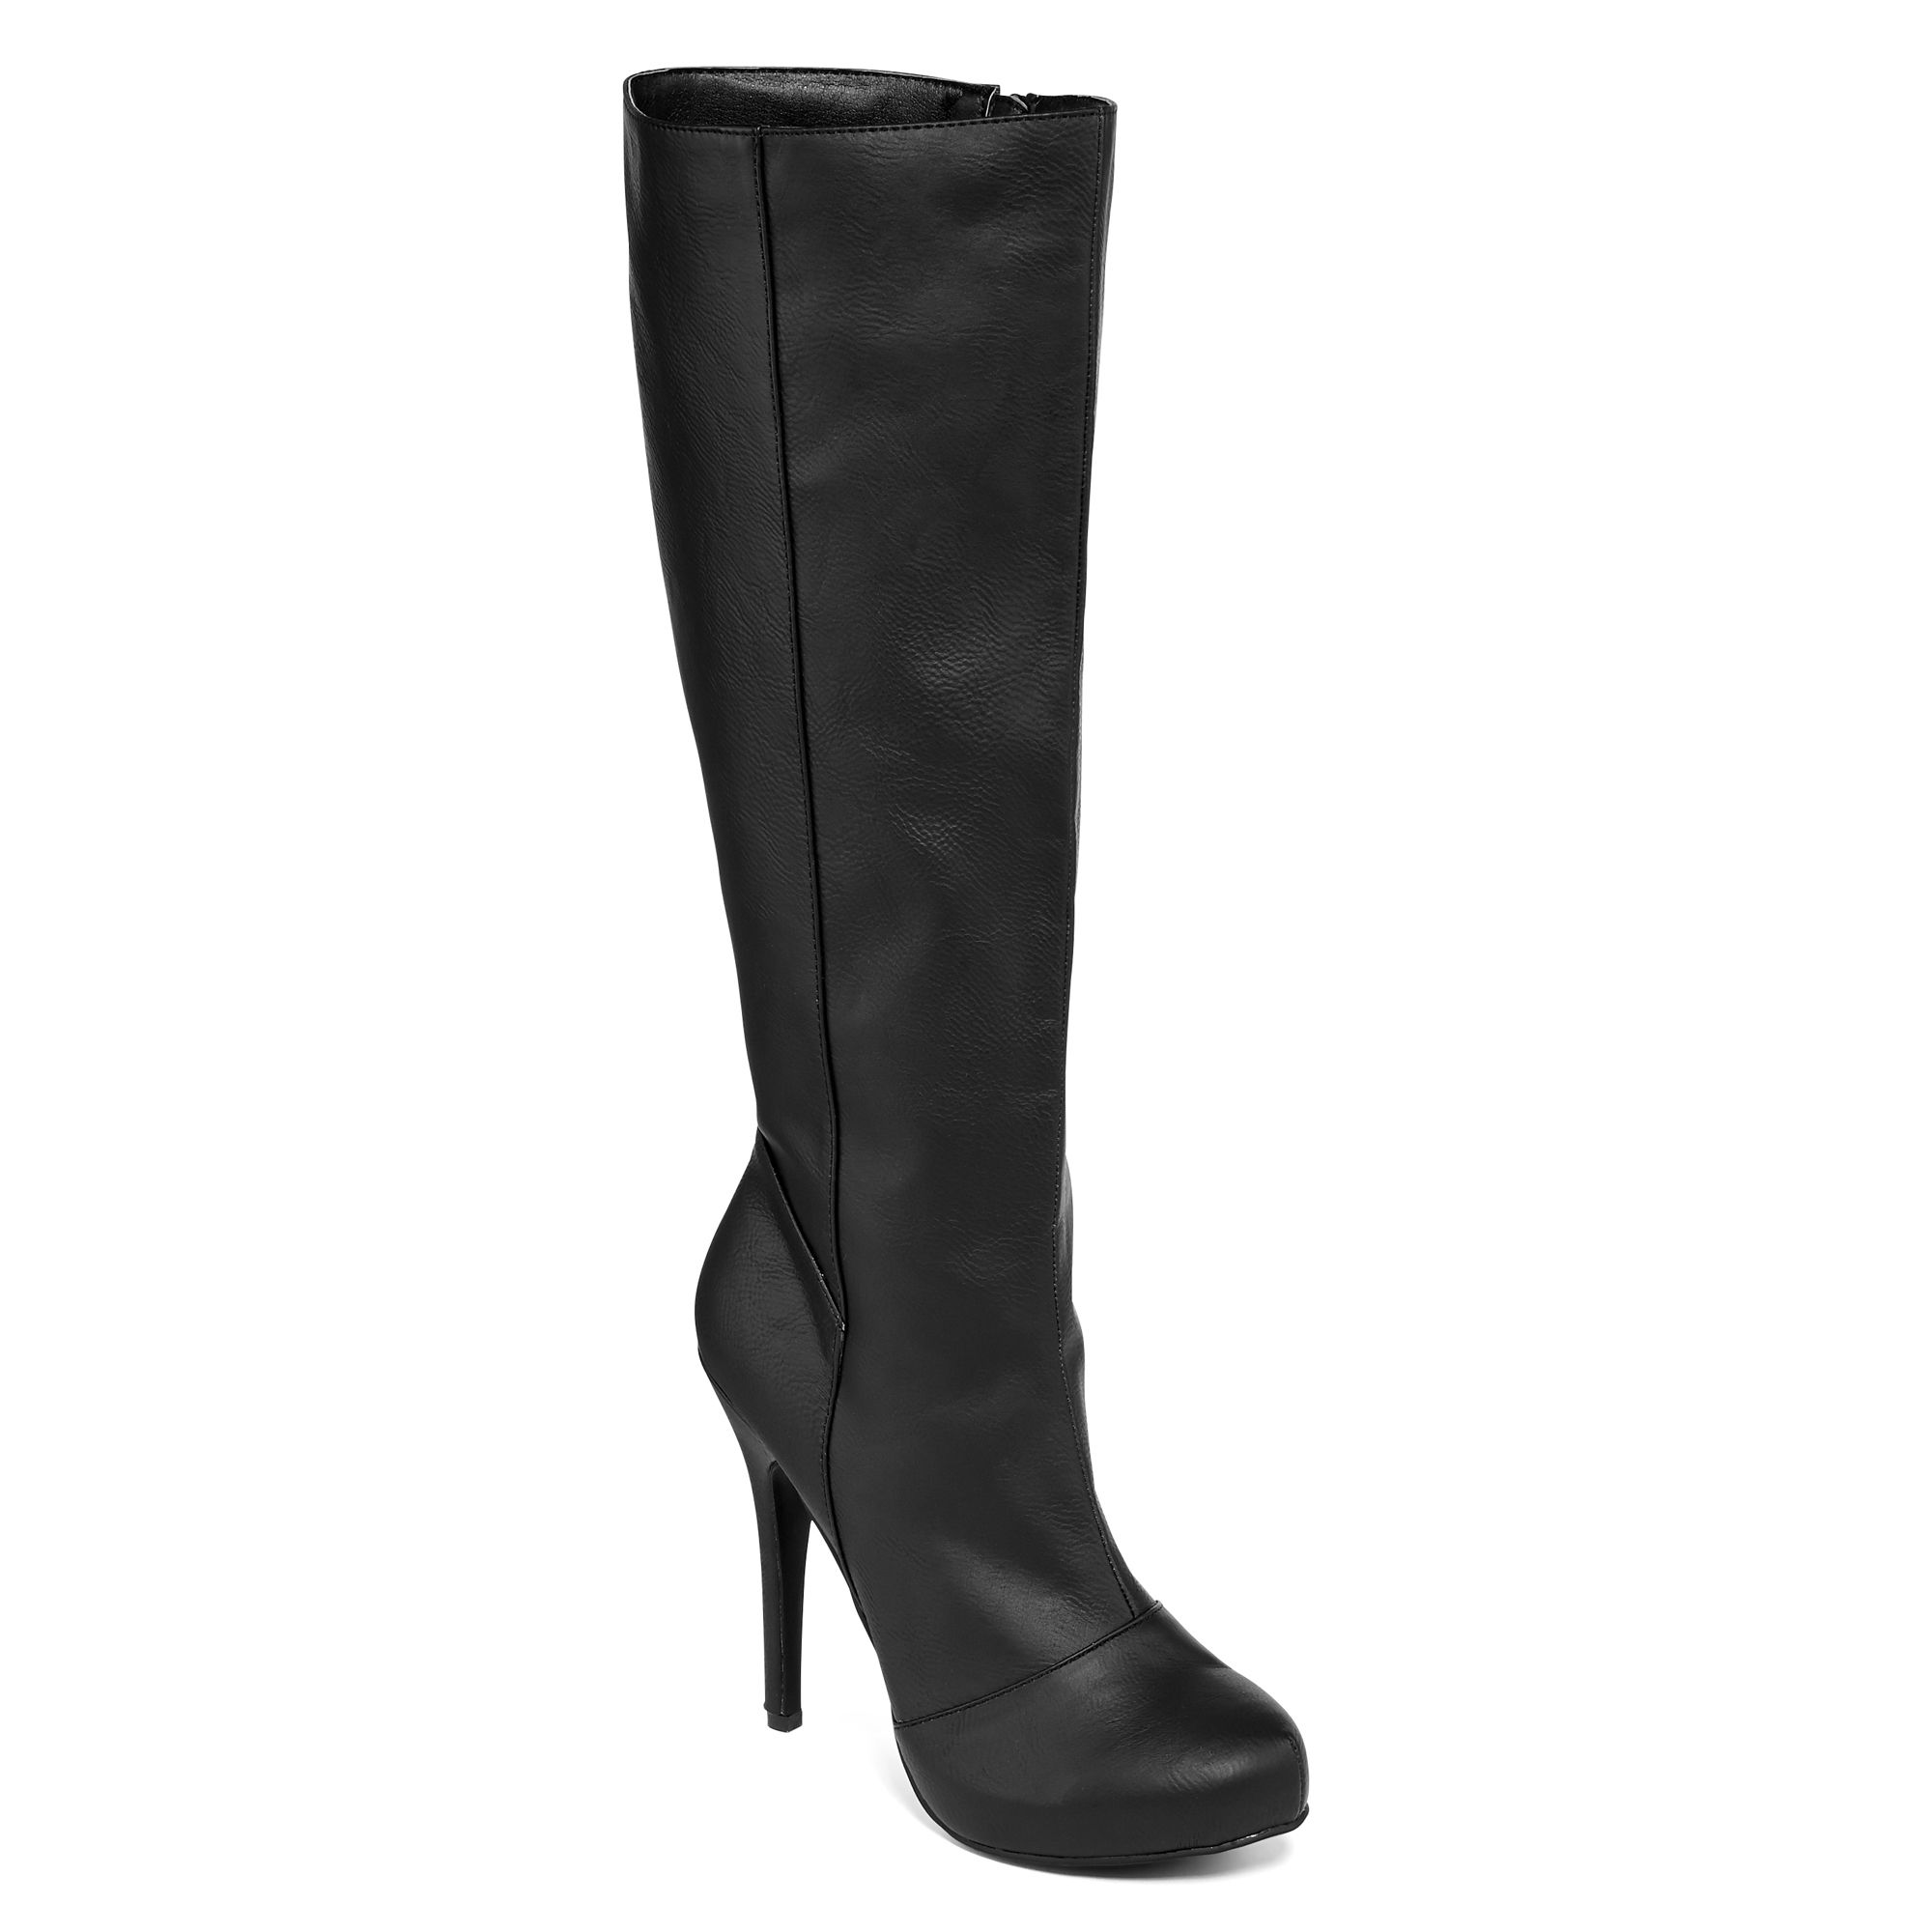 Michael Antonio Bickie Tall Boots - Wide Calf